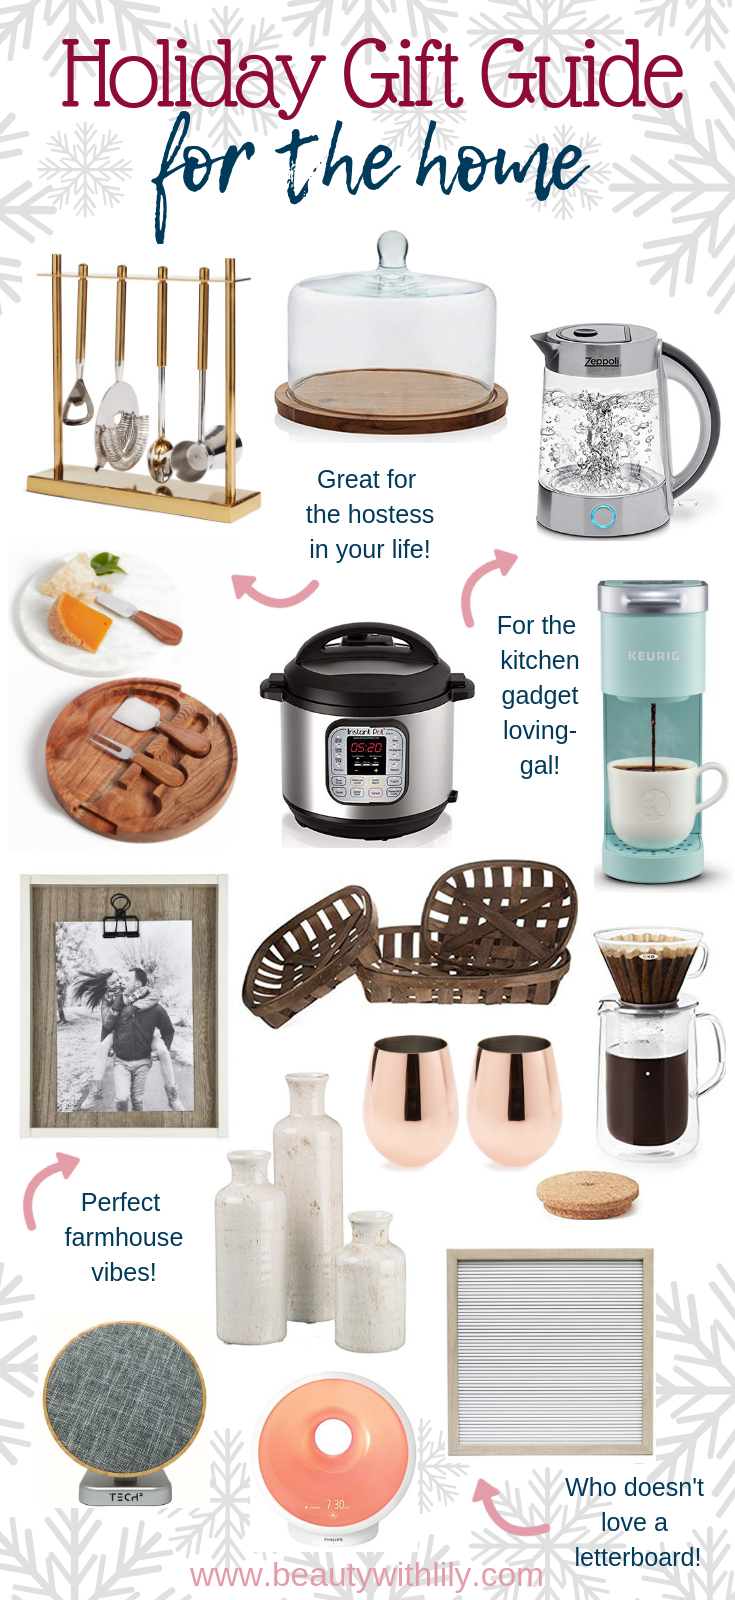 Gift Guide For The Home // Home Decor Gift Guide // Holiday Gift Guide // Kitchen Gadget Gift Guide // Gift Guide For Her   Beauty With Lily #giftguides #holidaygiftguide #giftsforher